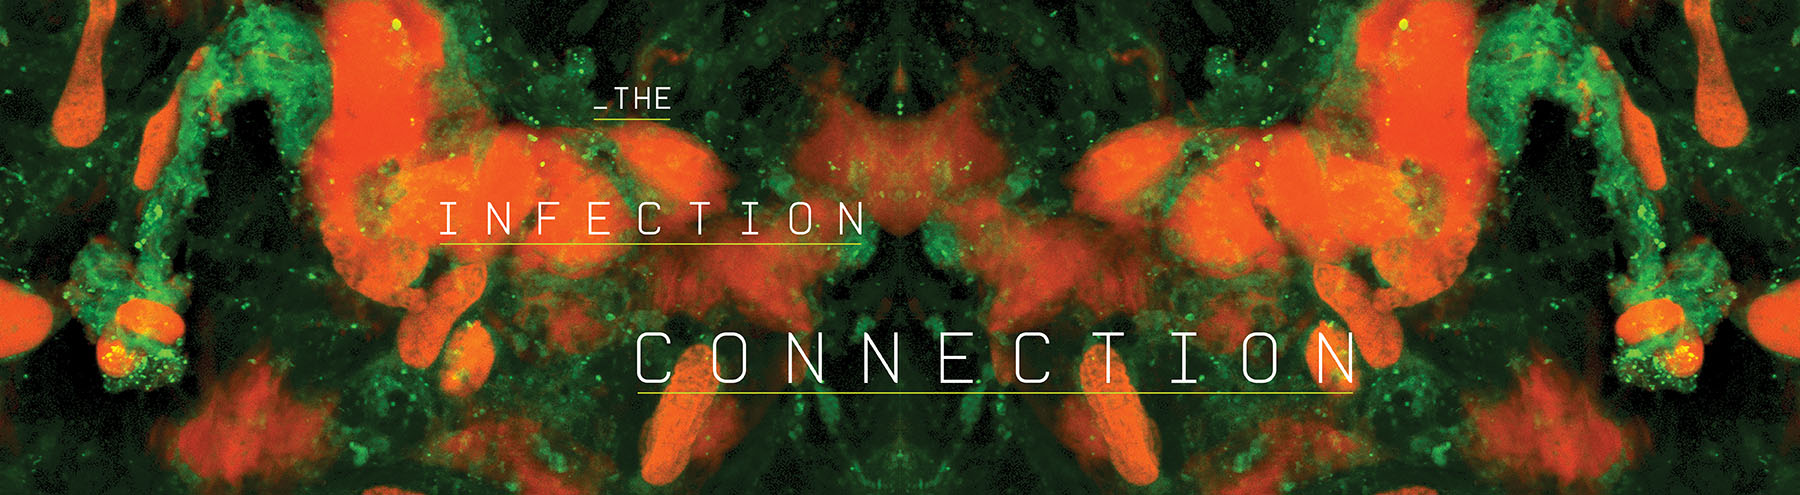 The Infection Connection